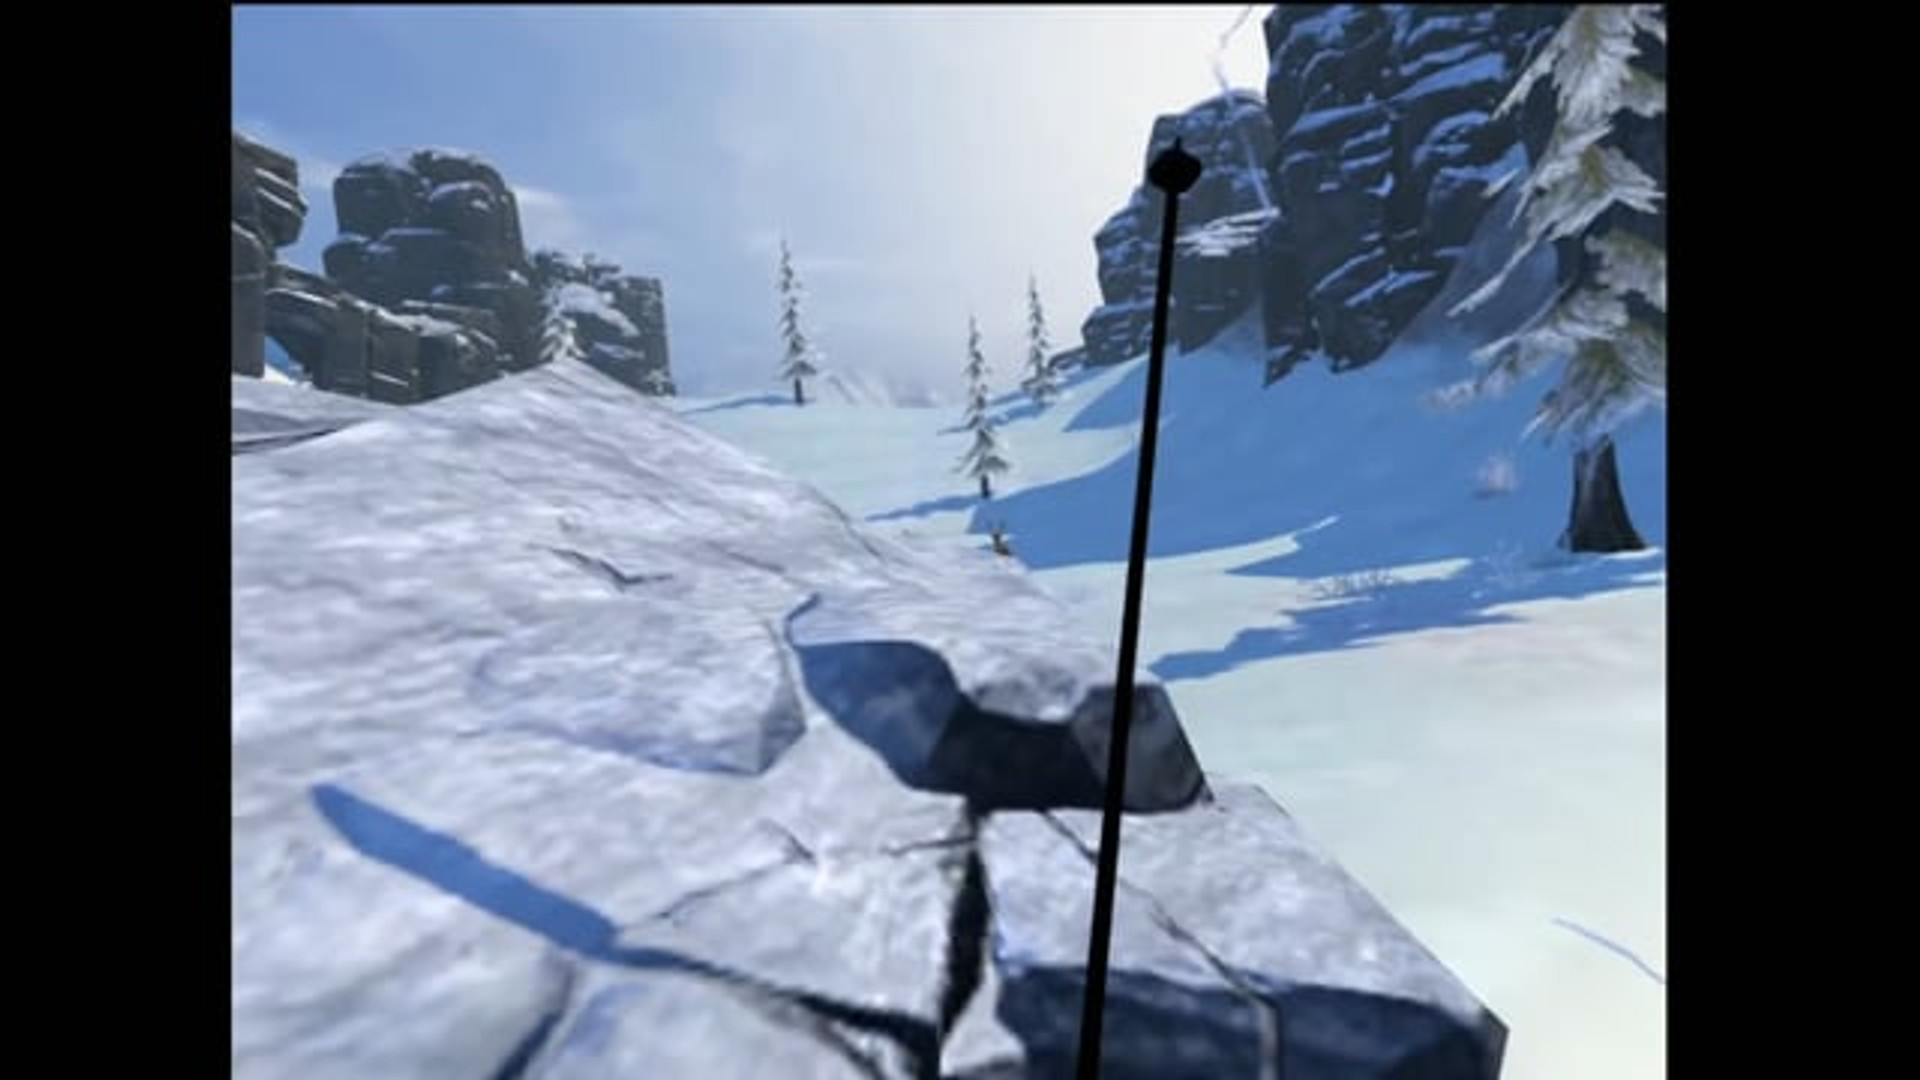 VR Skiing